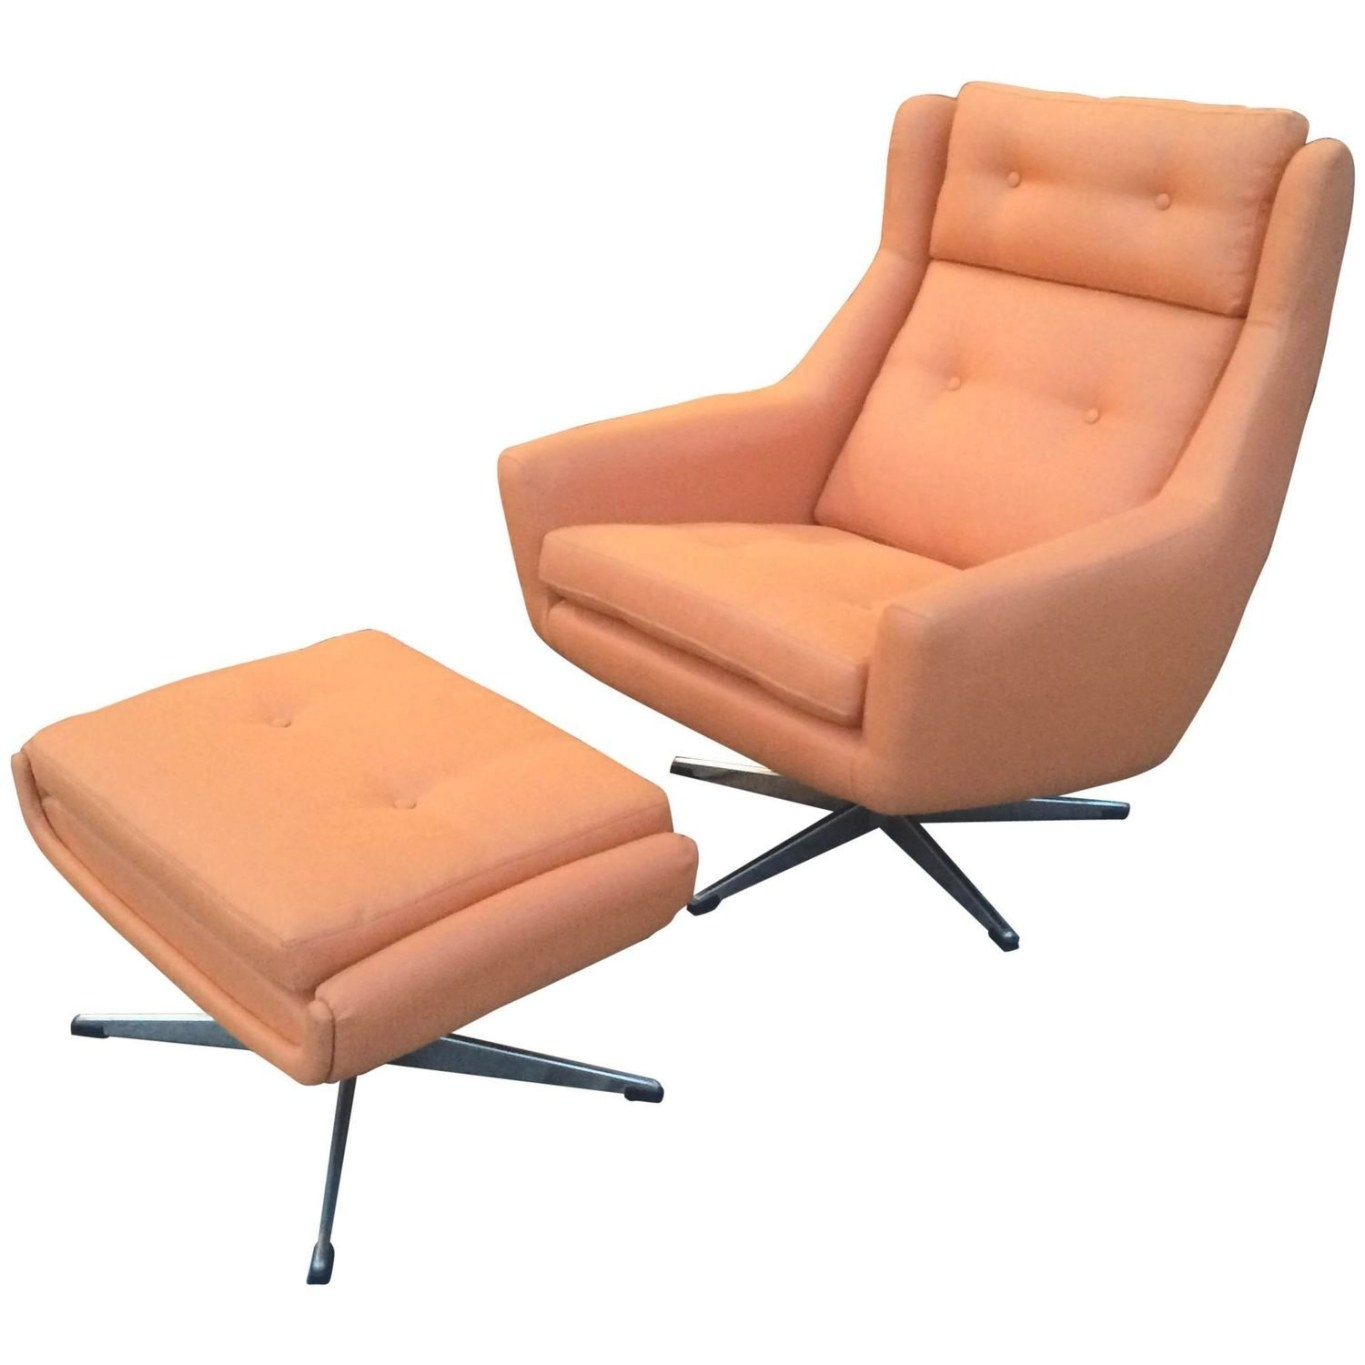 Mid-Century Modern Lounge Chair And Ottoman Attributed To for Mid Century Lounge Chair